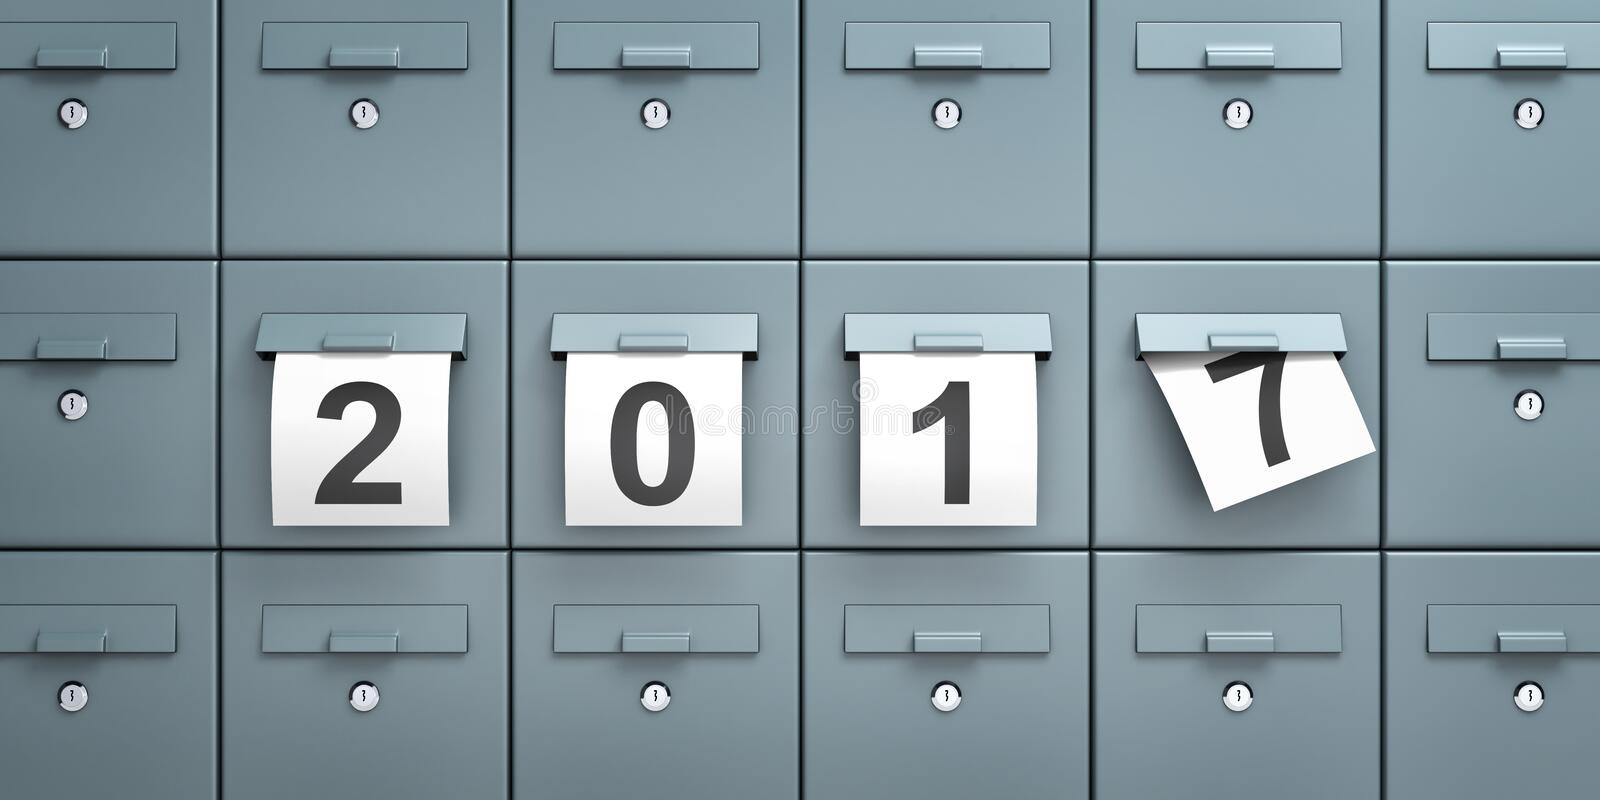 Mailboxes with sheets of paper with digits 2017 stock illustration